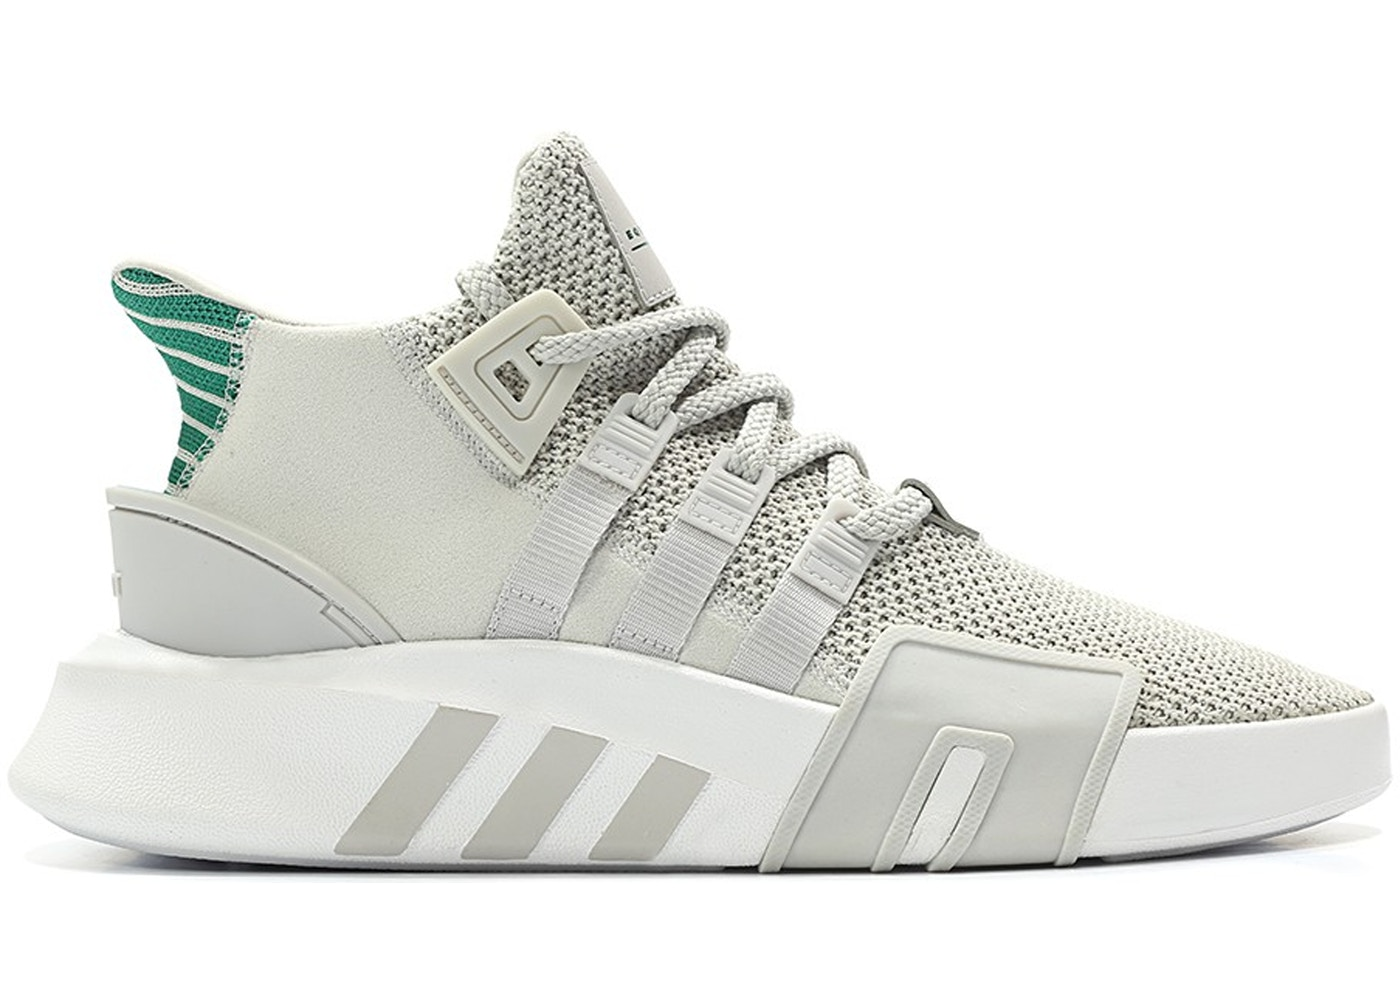 outlet store 25bba f81d4 adidas EQT Basketball Adv Grey One Sub Green